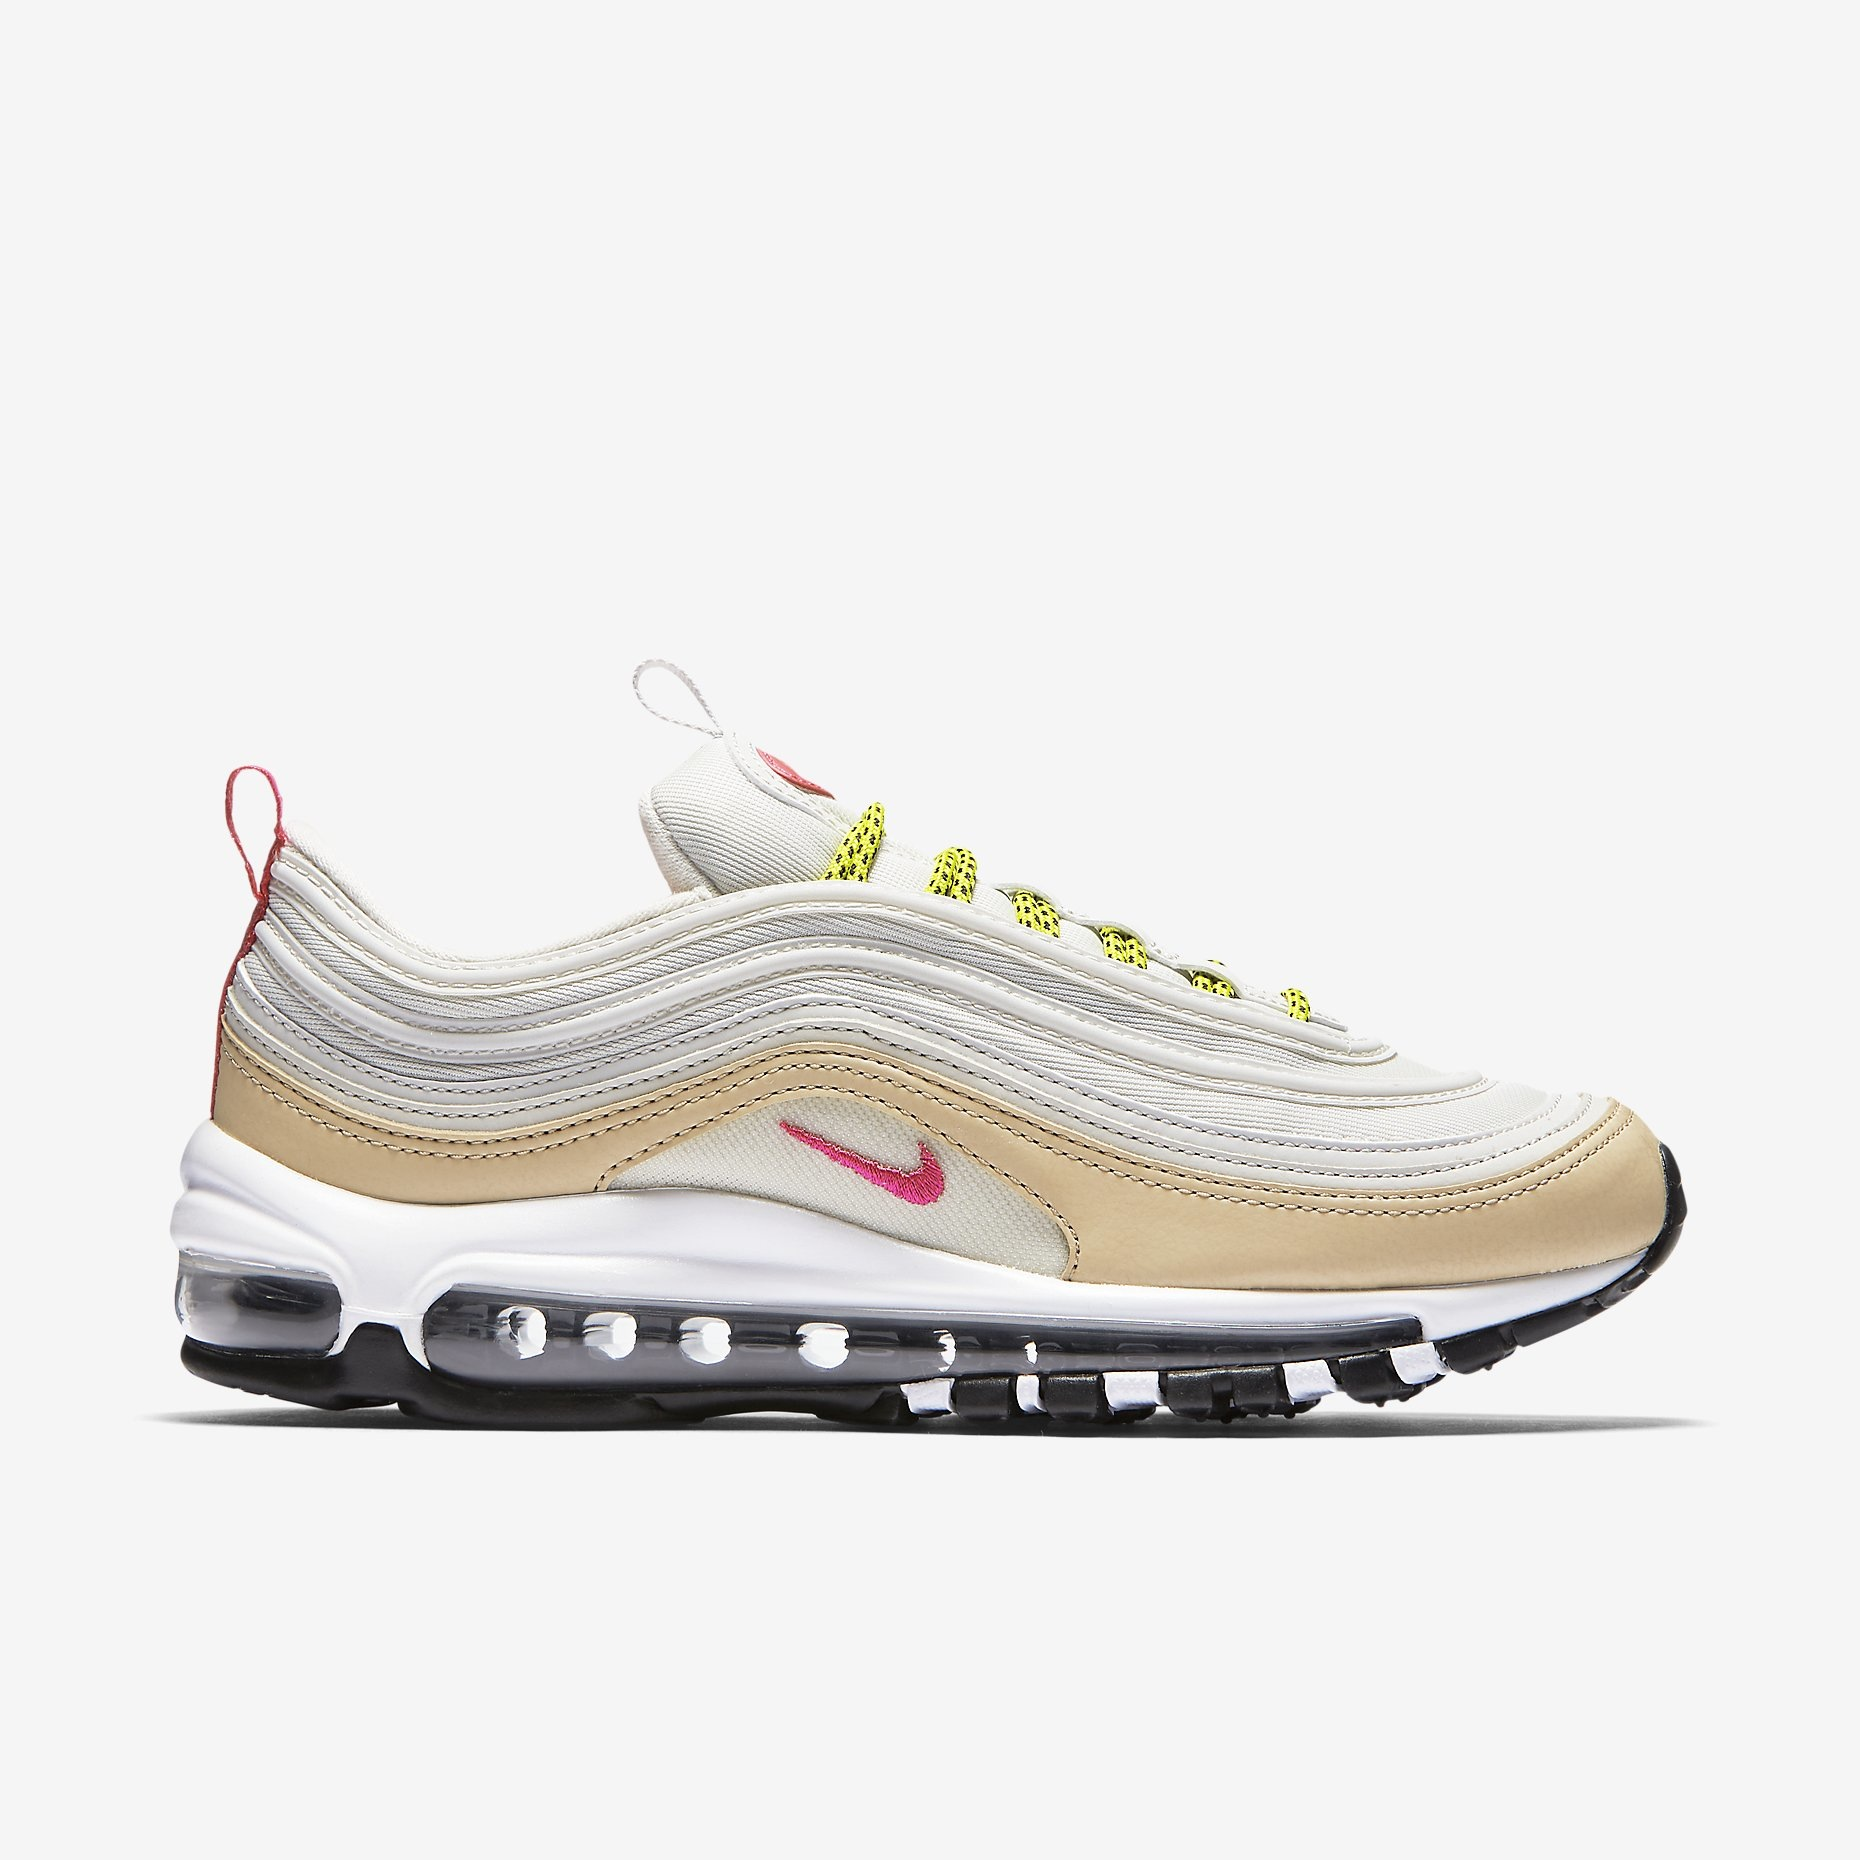 nike w air max 97 light bone deadly pink sneakers. Black Bedroom Furniture Sets. Home Design Ideas